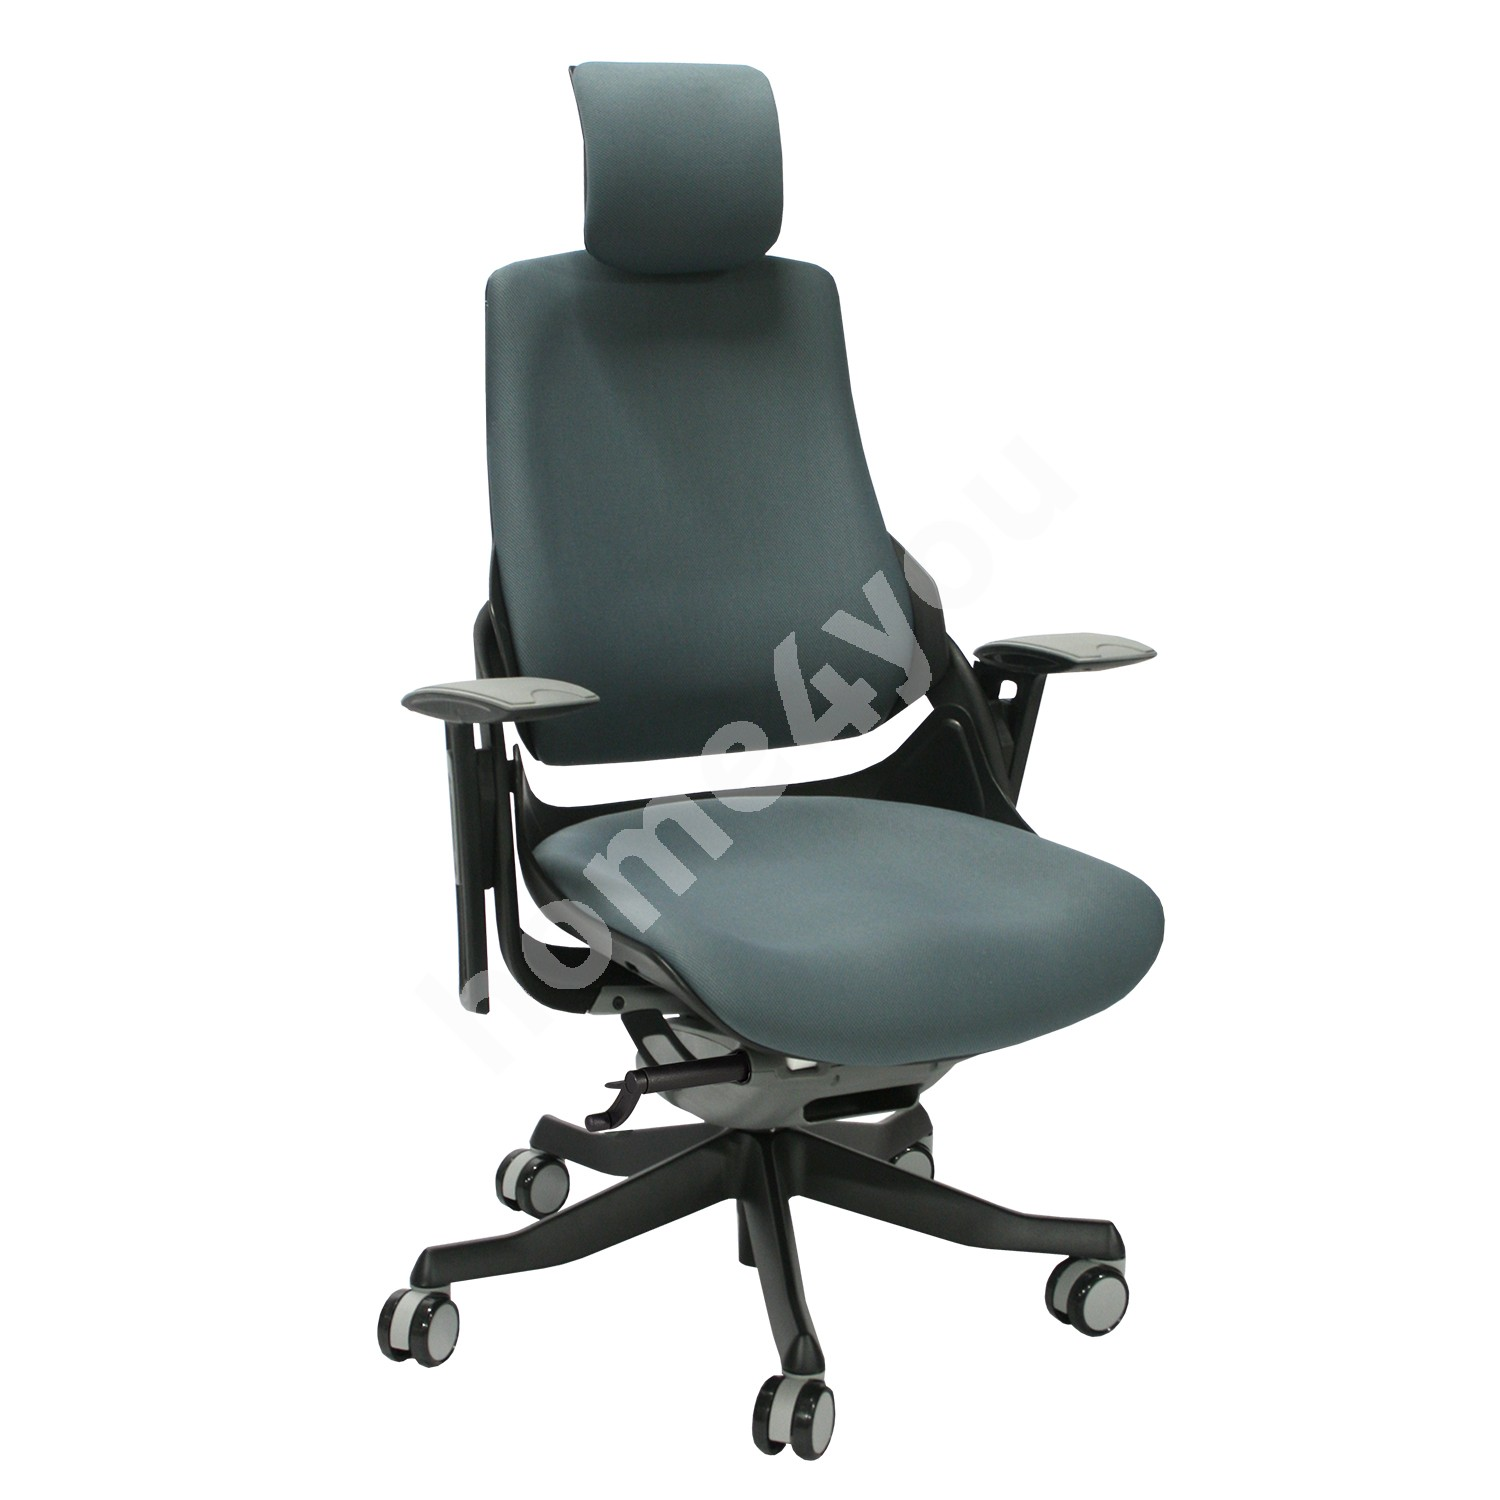 Task chair WAU with headrest, 65xD49xH112-129cm, seat: fabric, color: slate grey, black outer shell